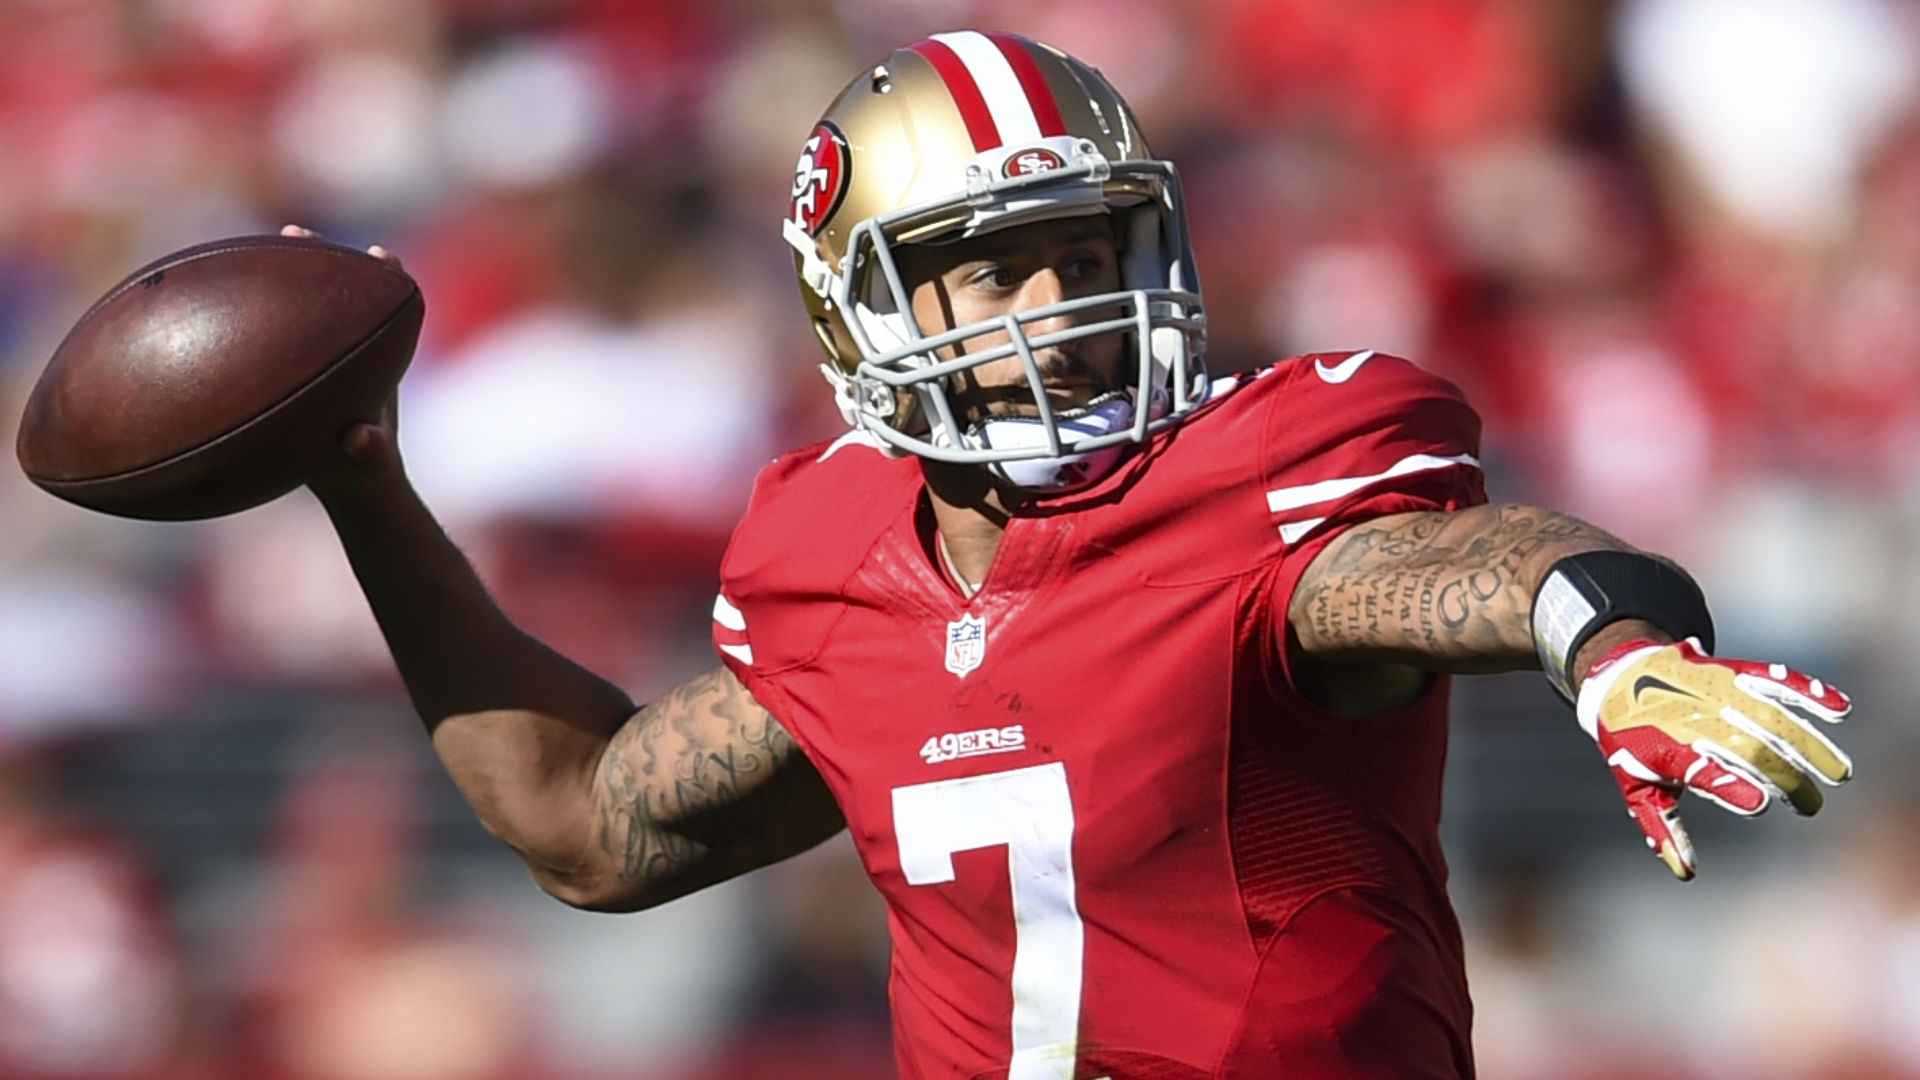 Seahawks at 49ers betting preview and pick – San Fran looks to end Seattle's series dominance